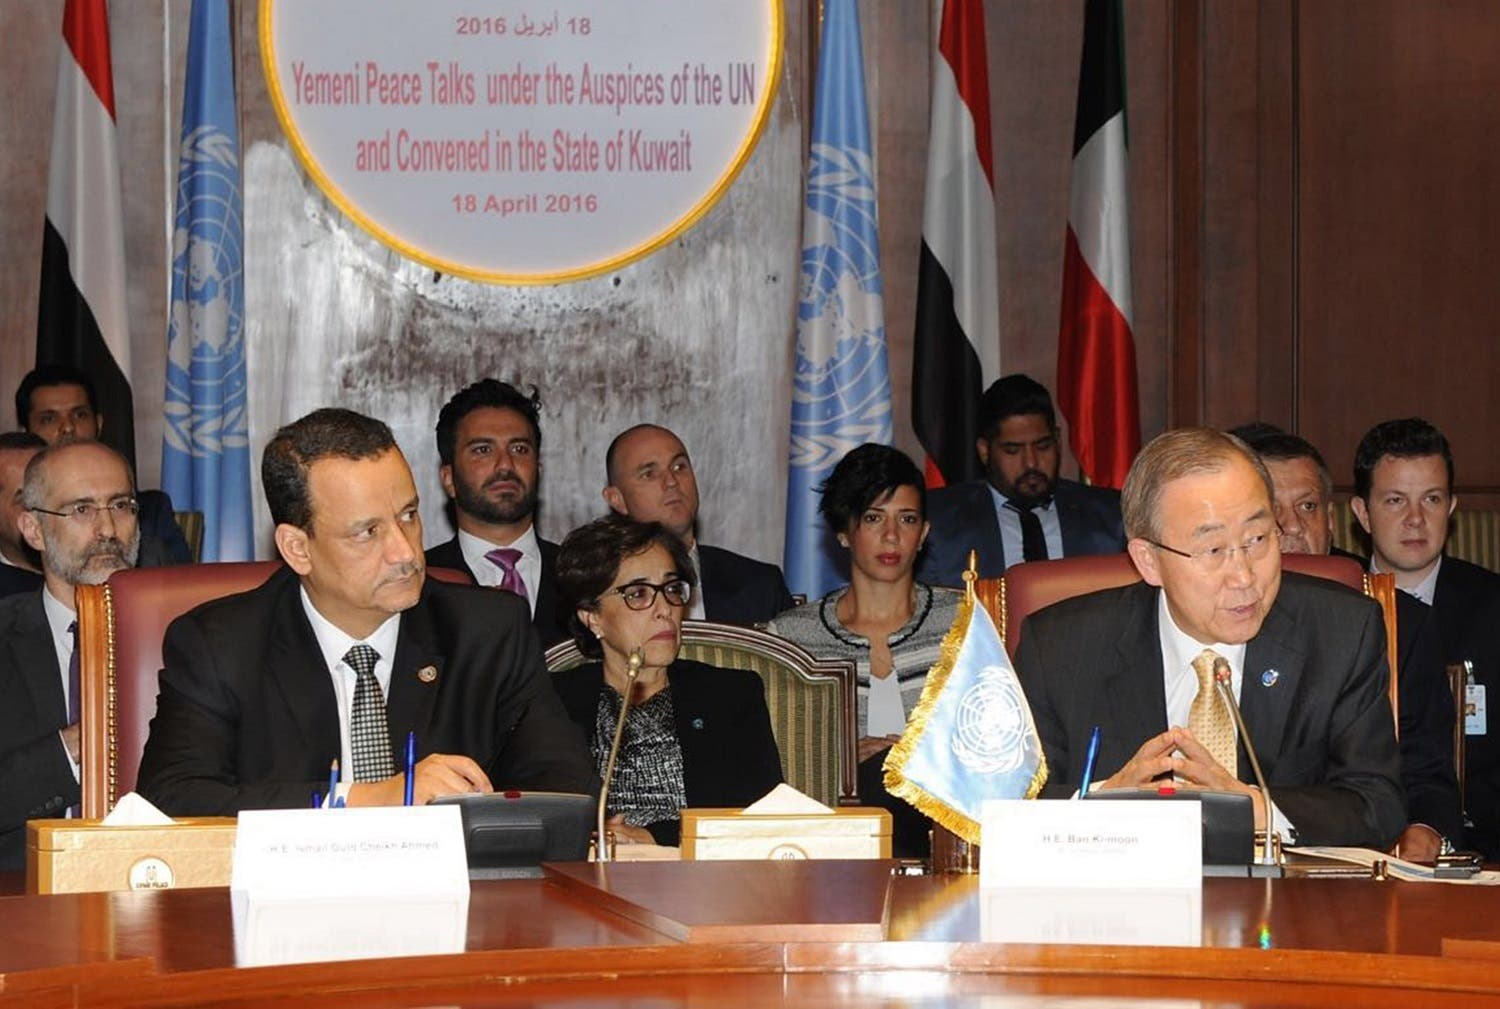 United Nations special envoy to Yemen, Ismail Ould Cheikh Ahmed (L), and UN Secretary General Ban Ki-moon attending a joint meeting for the Yemeni negotiators in Kuwait City (Photo: AFP)